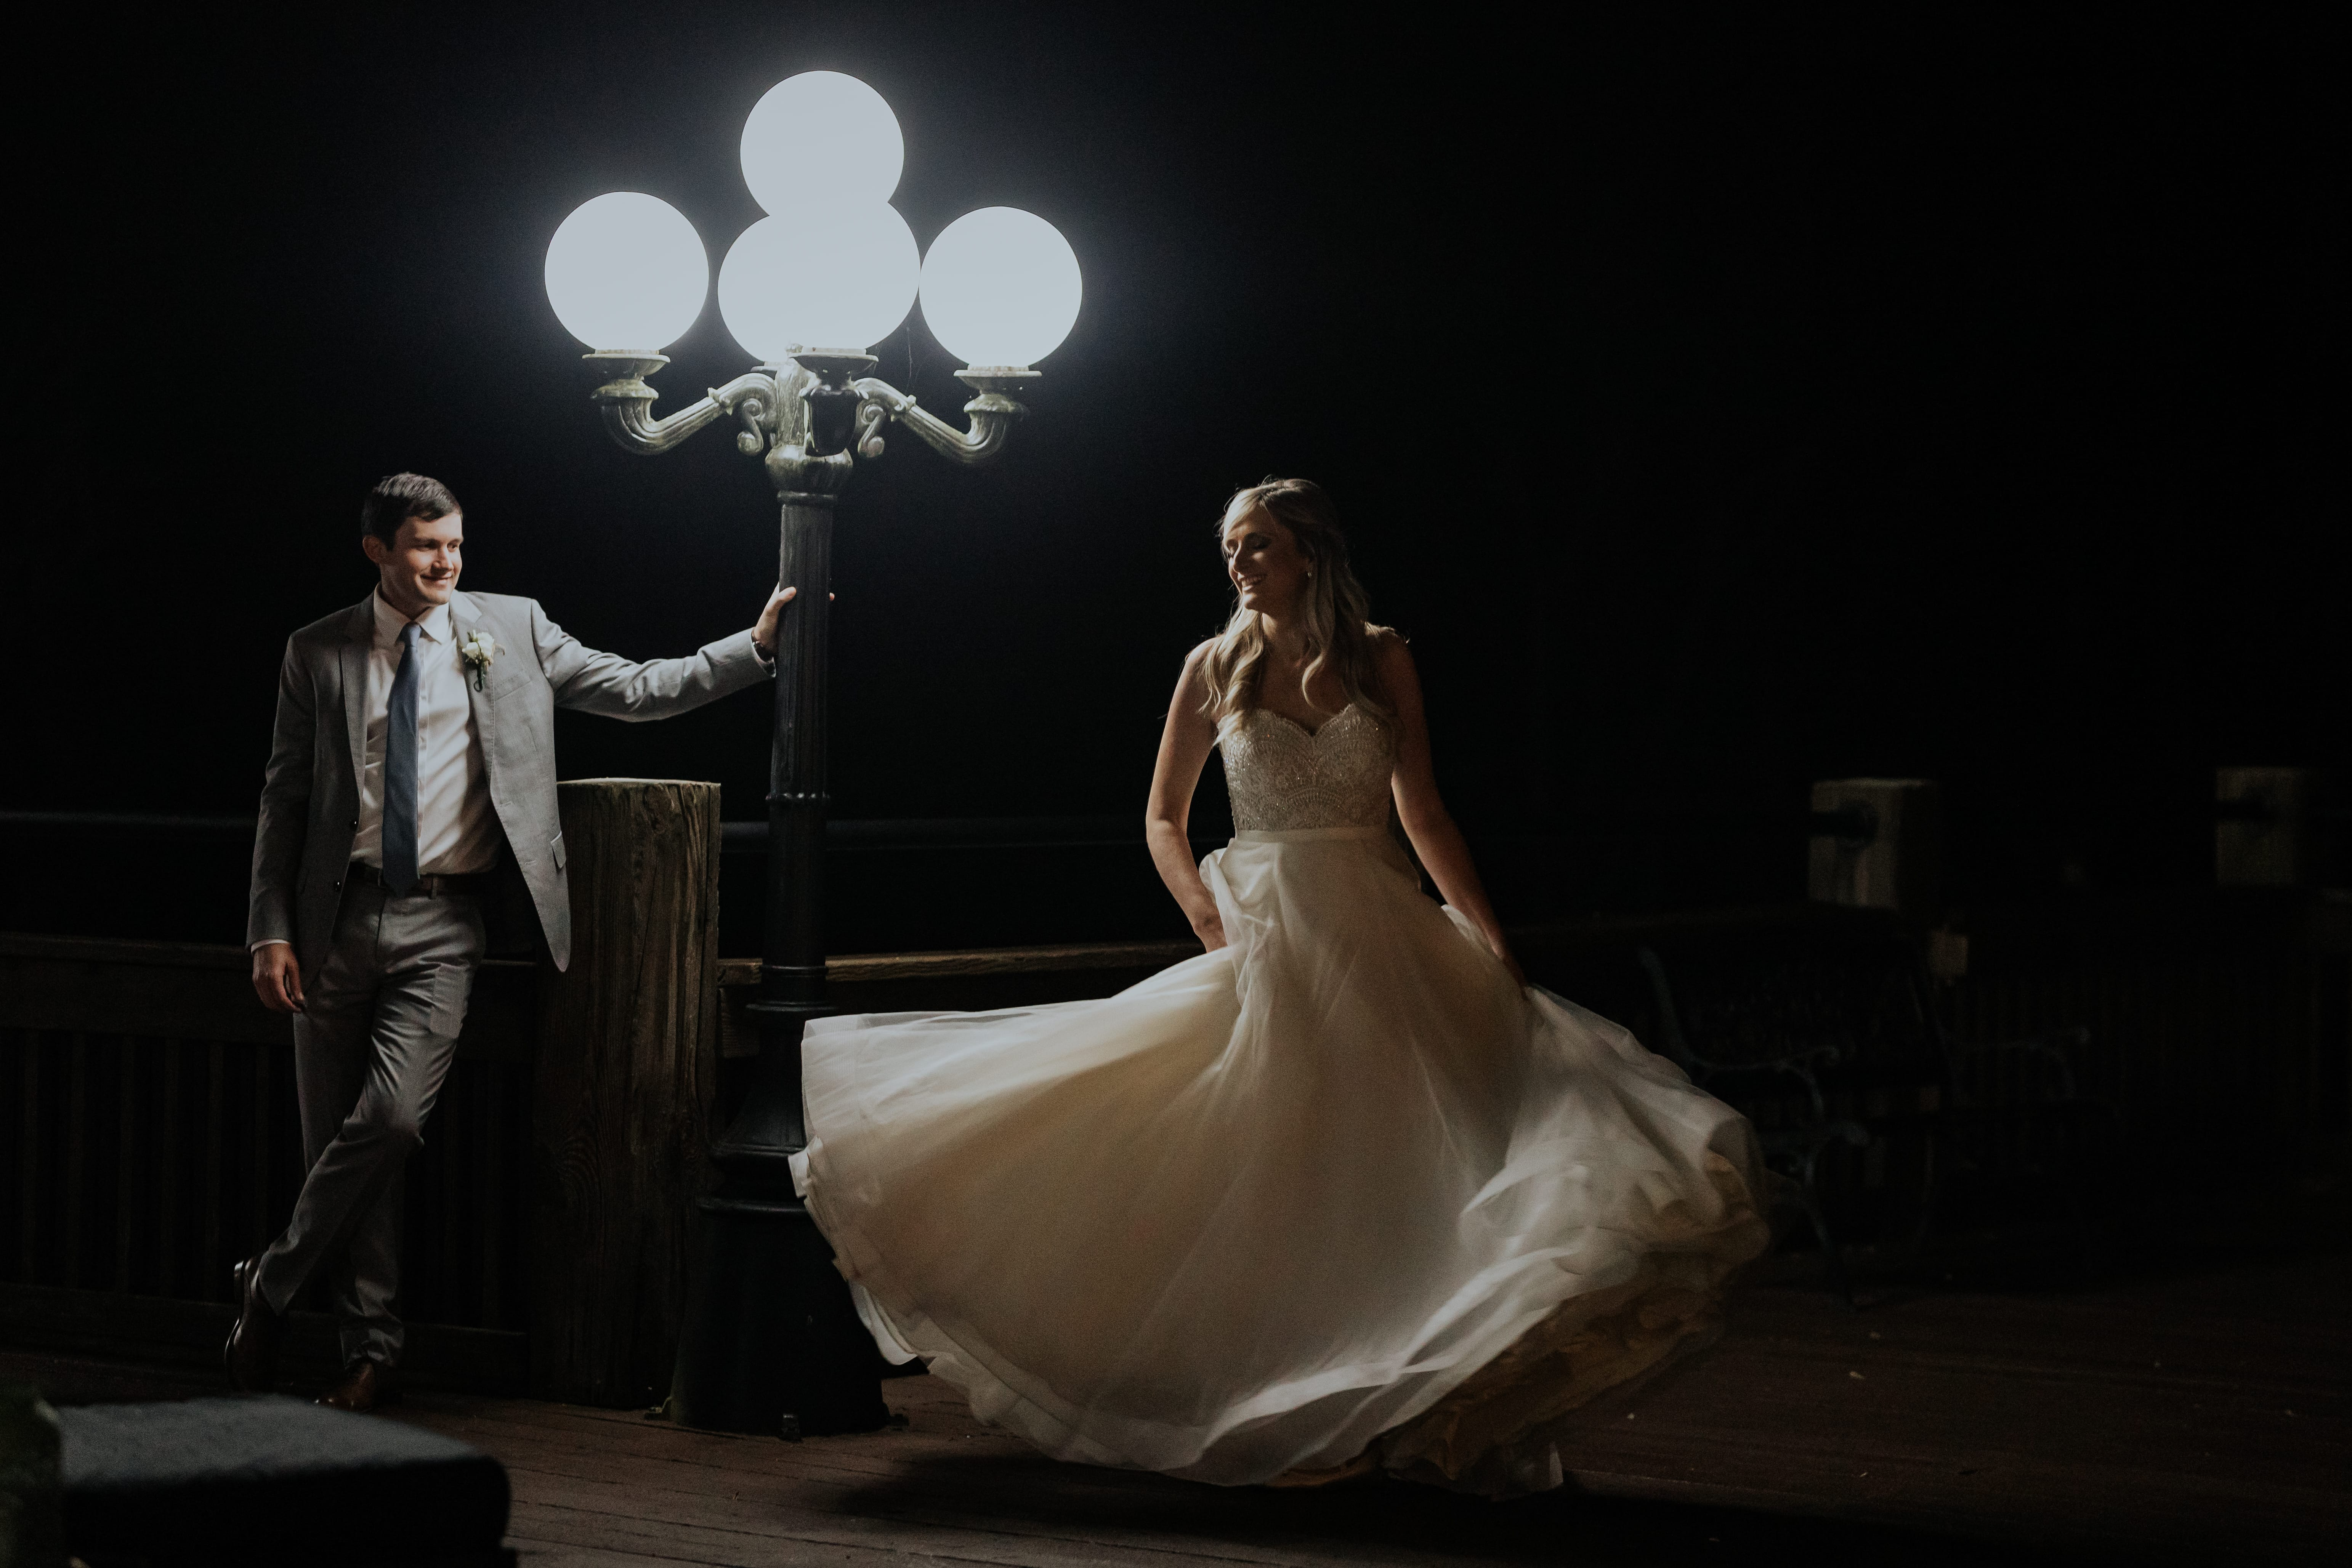 Atlanta Wedding Photographer Bride dancing Lamp Post